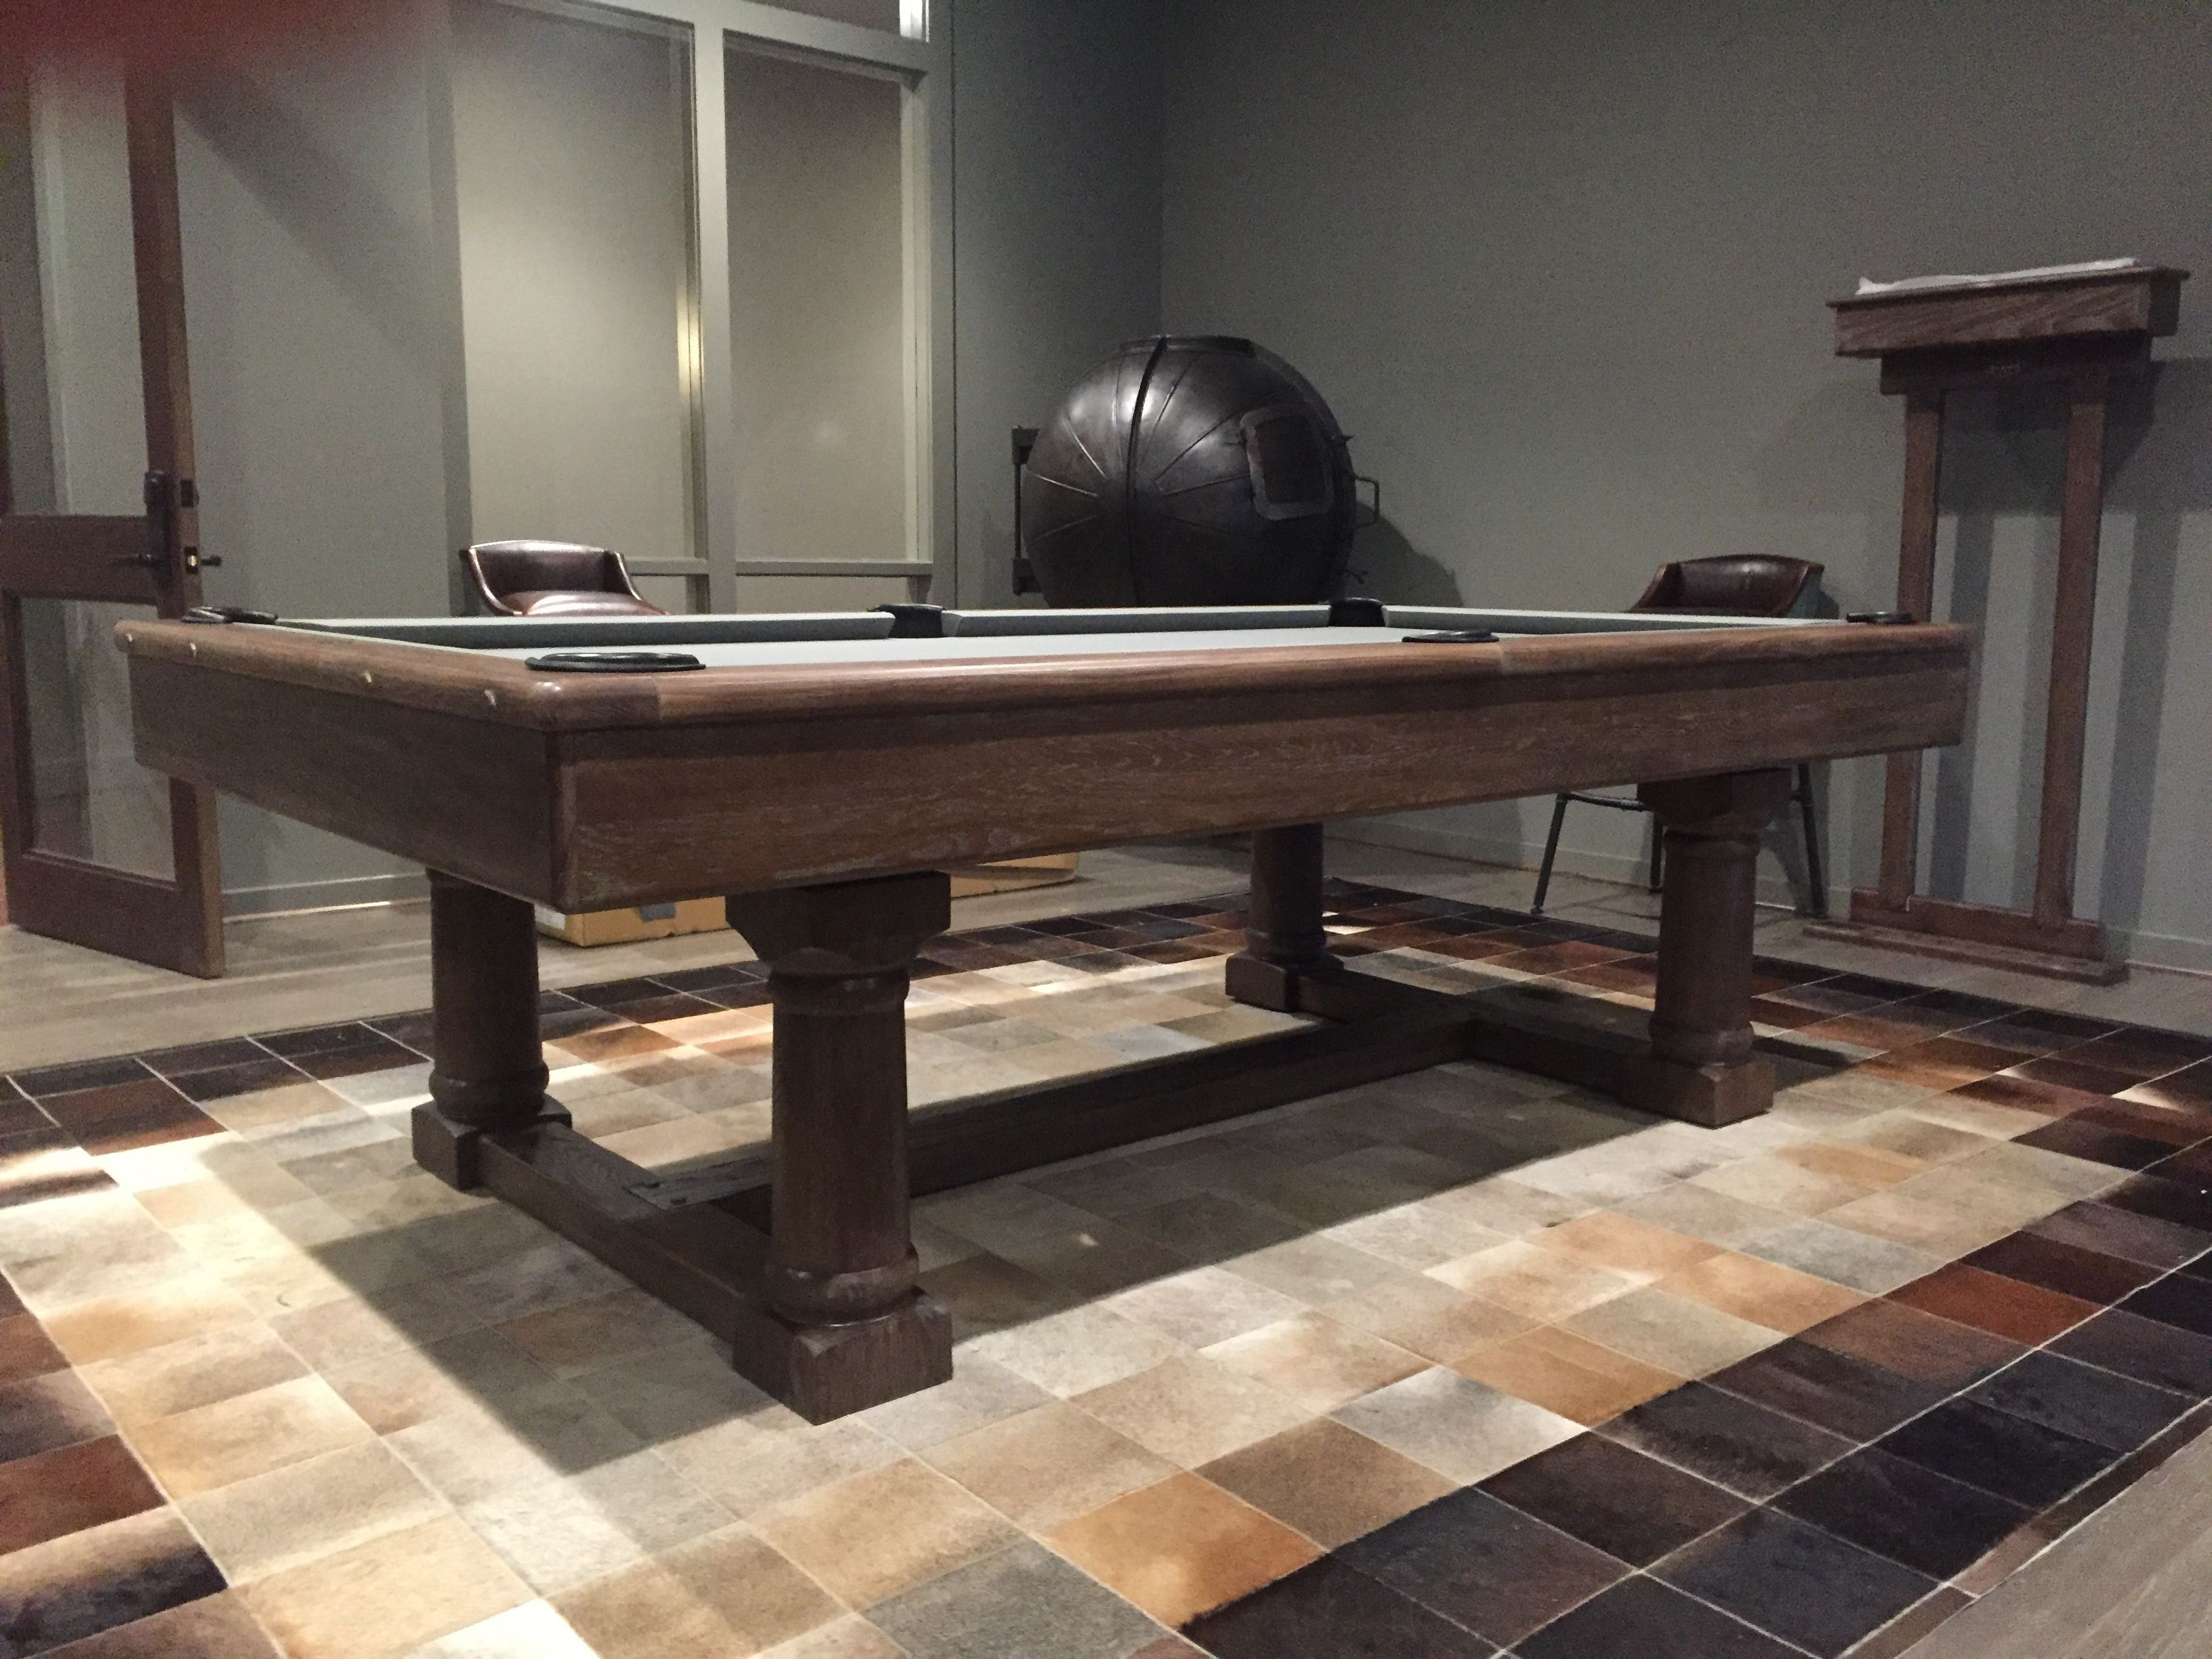 Attirant Brunswick Billiards Park Falls Pool Table, By Everything Billiards U0026 Spas.  Installed In Charlotte